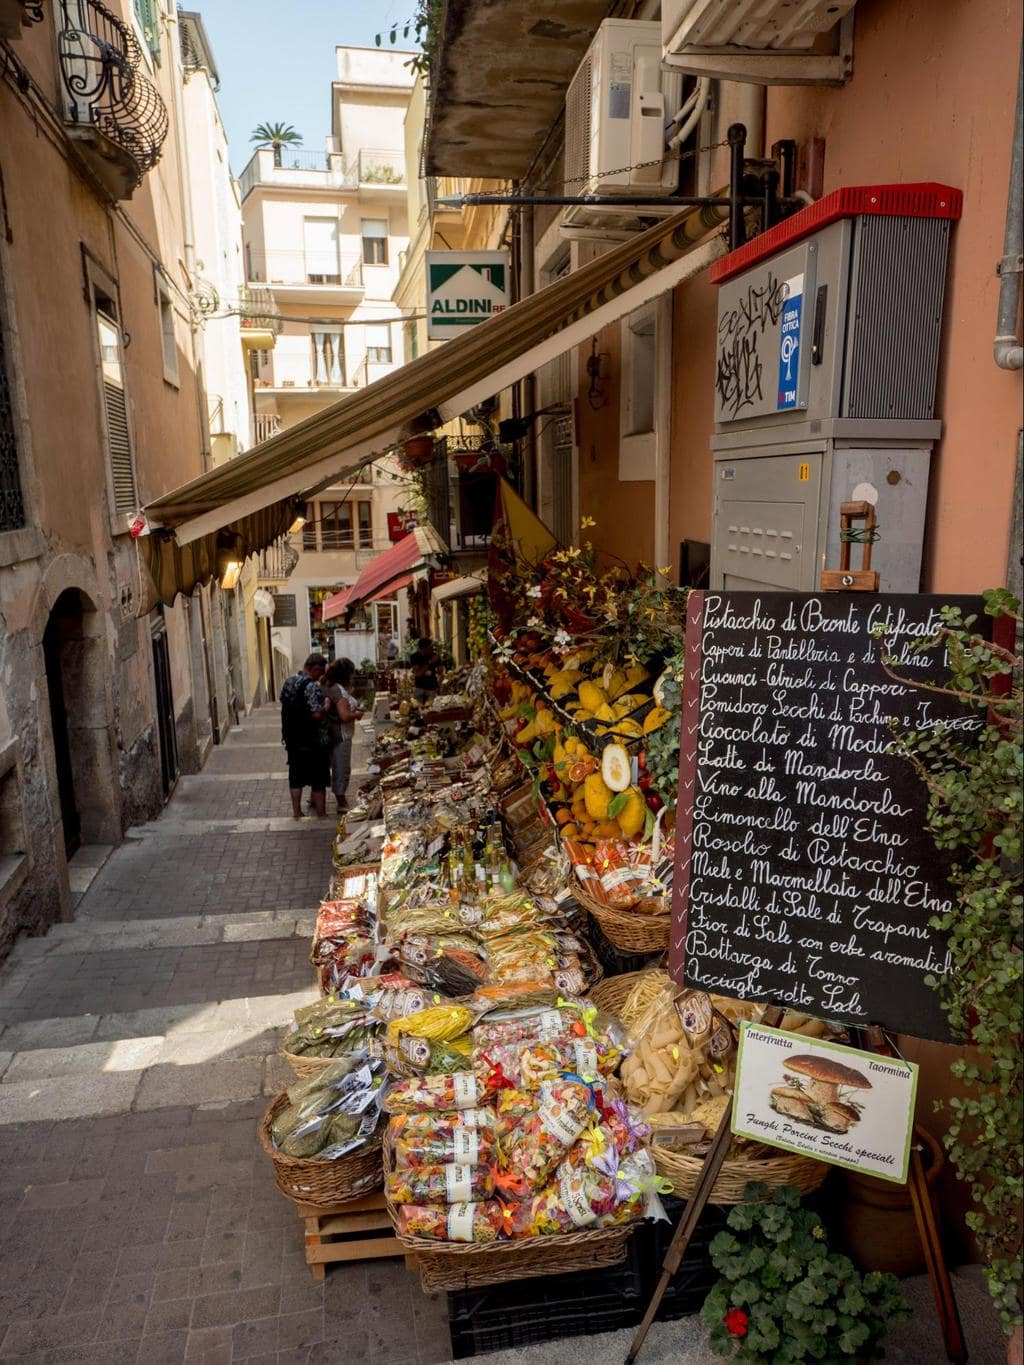 Guide to Taormina: Best things to do, places to eat and